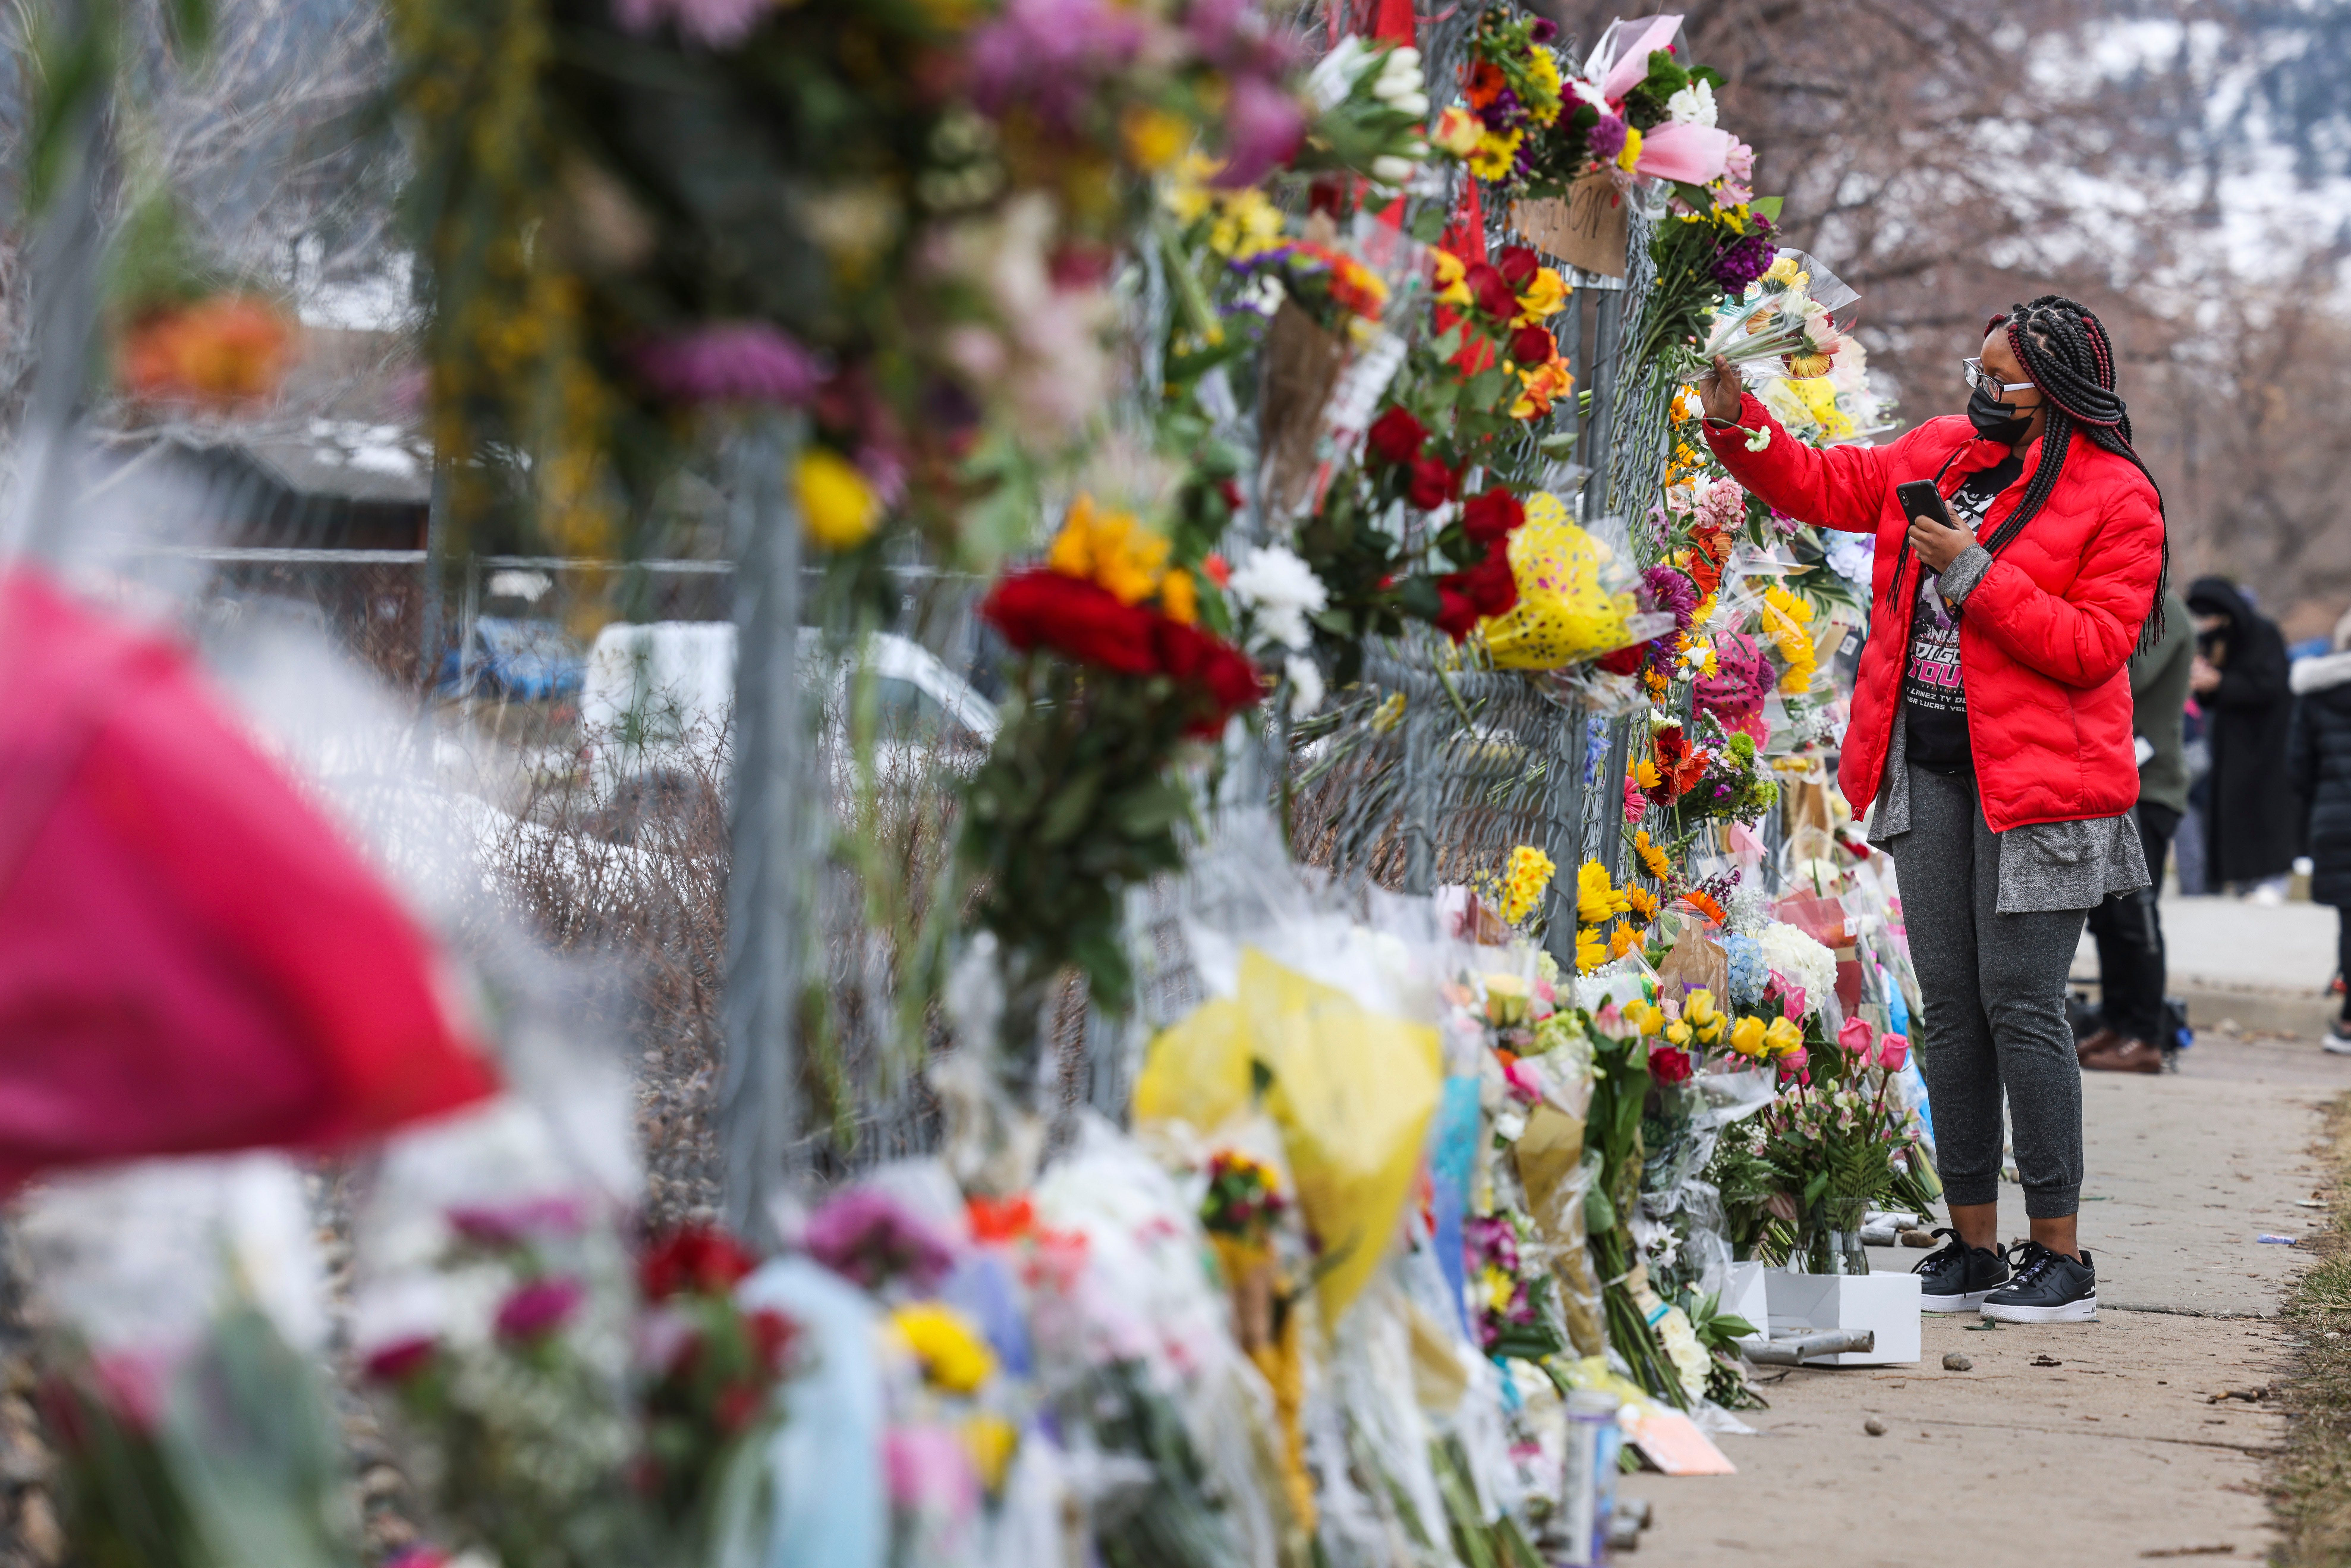 A woman places flowers at a memorial for the victims of the Colorado shooting.